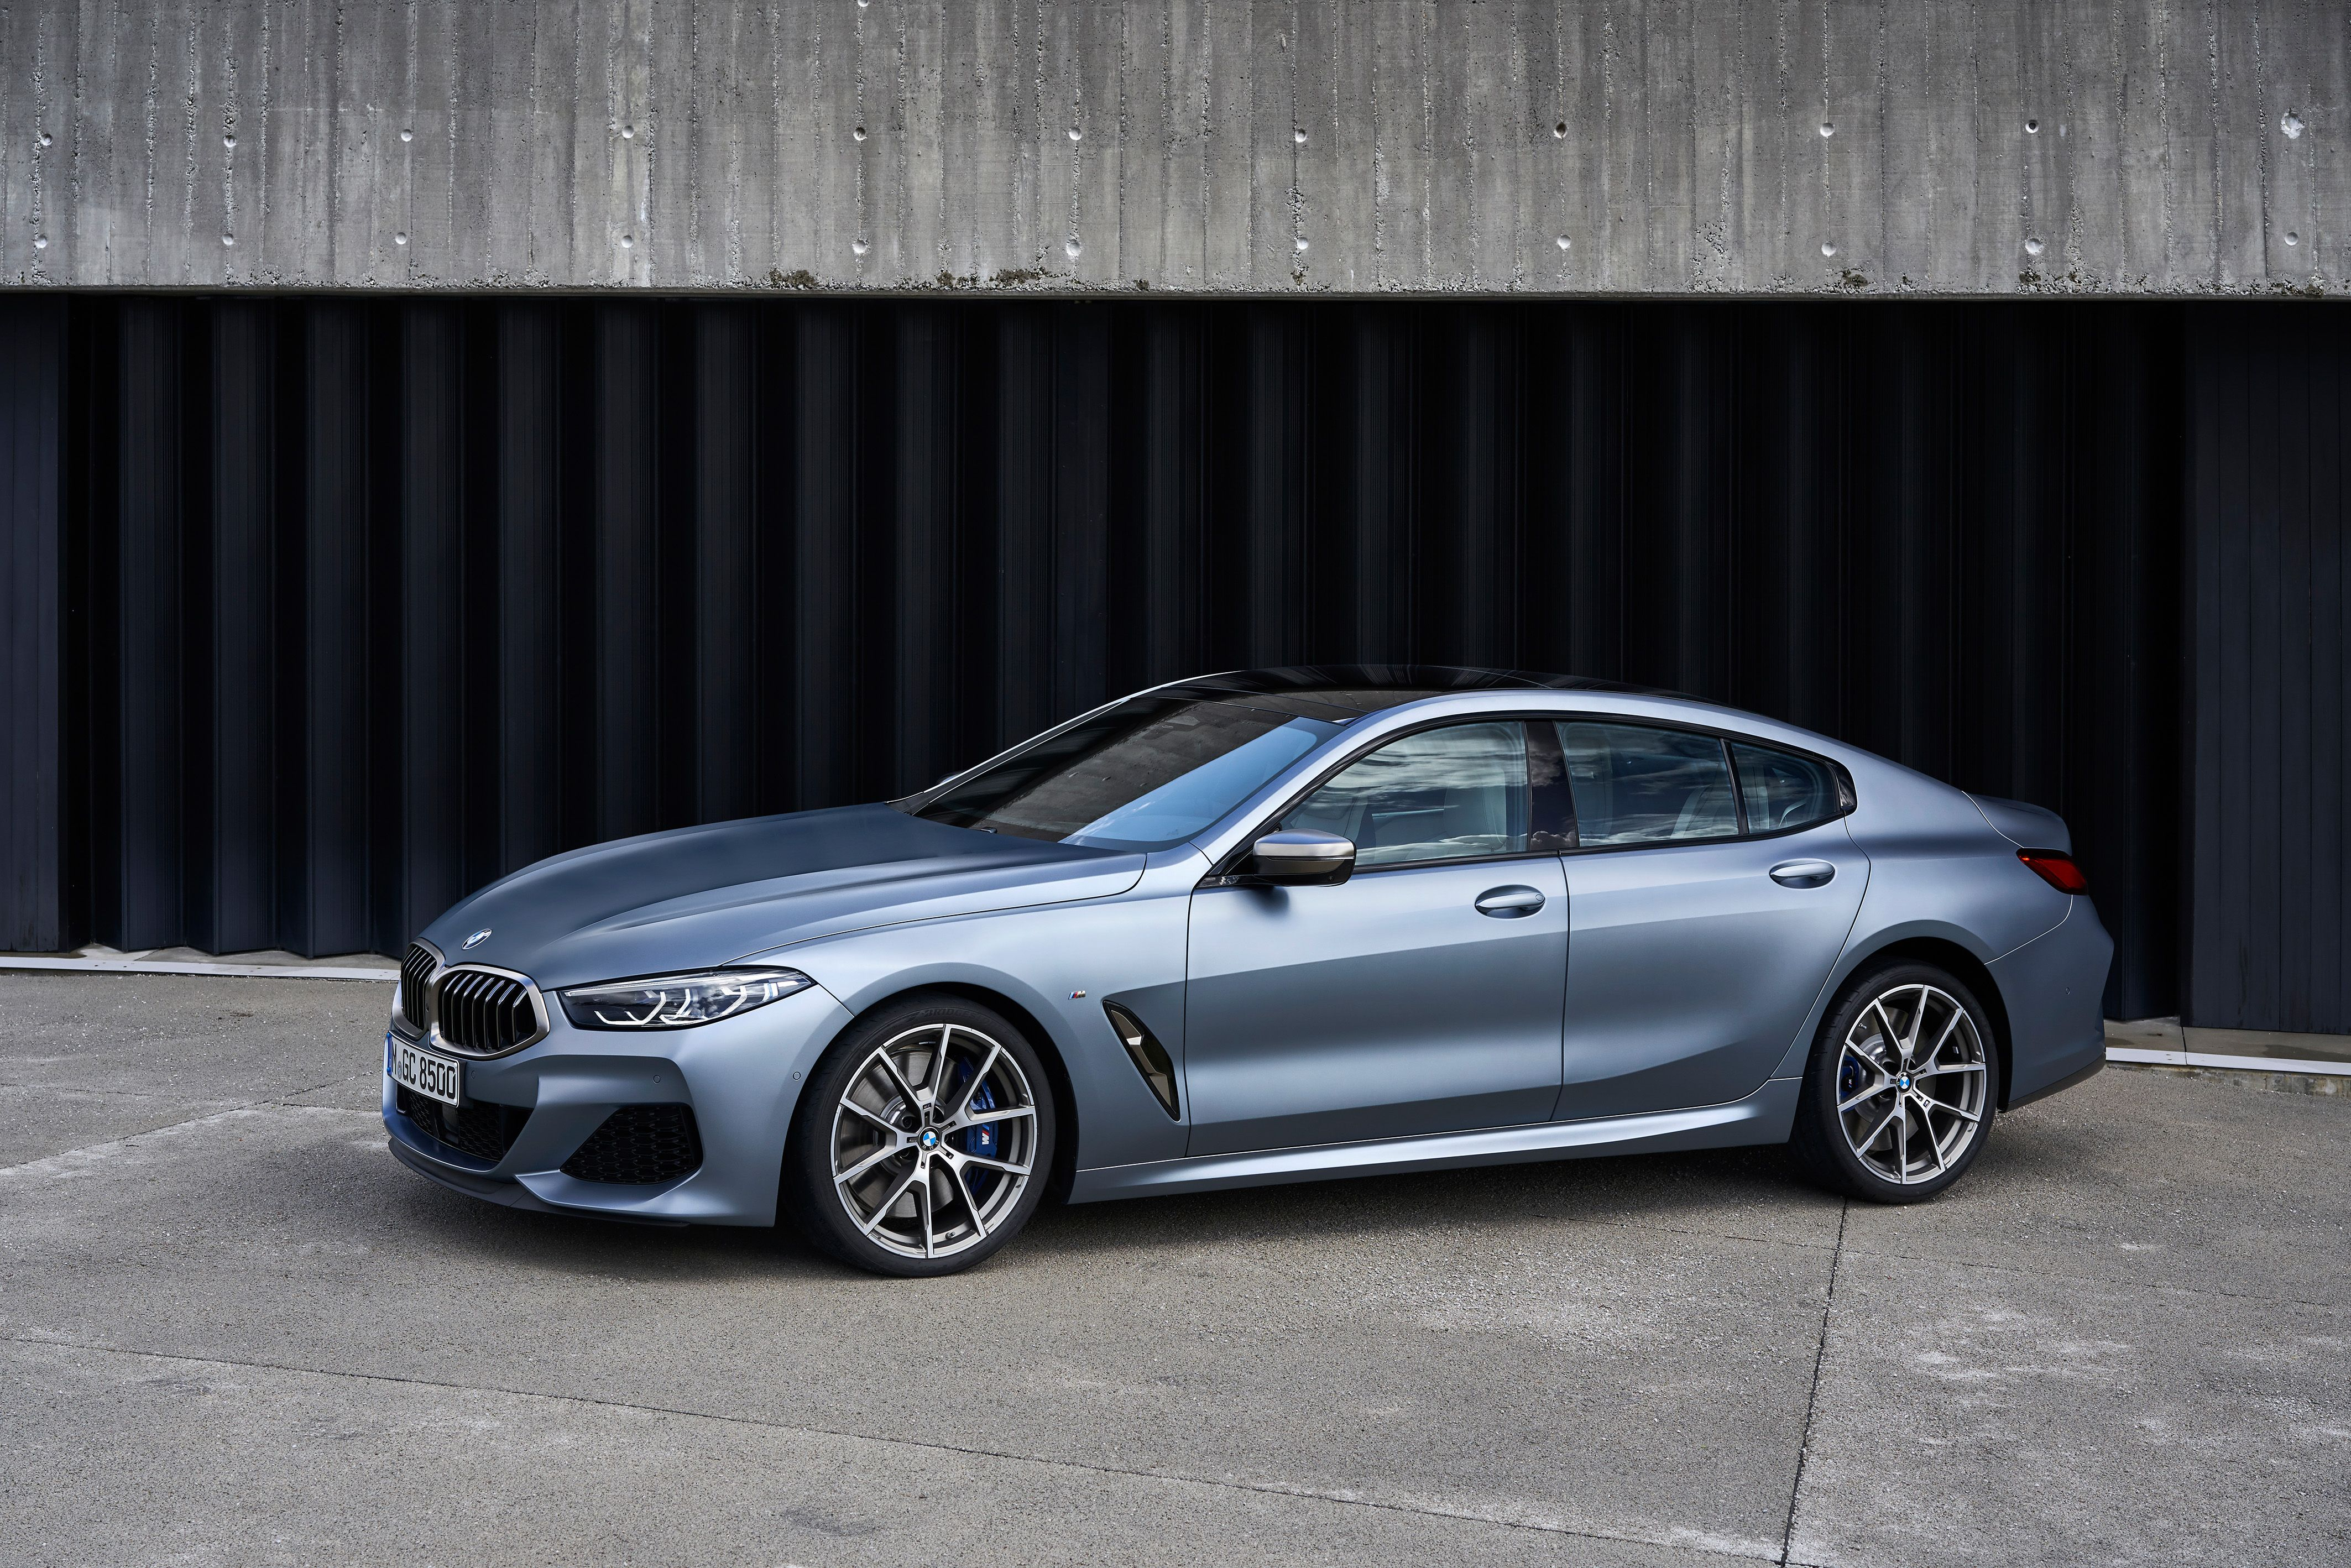 2020 Bmw 8 Series Gran Coupe Is Handsome And Spacious Price On